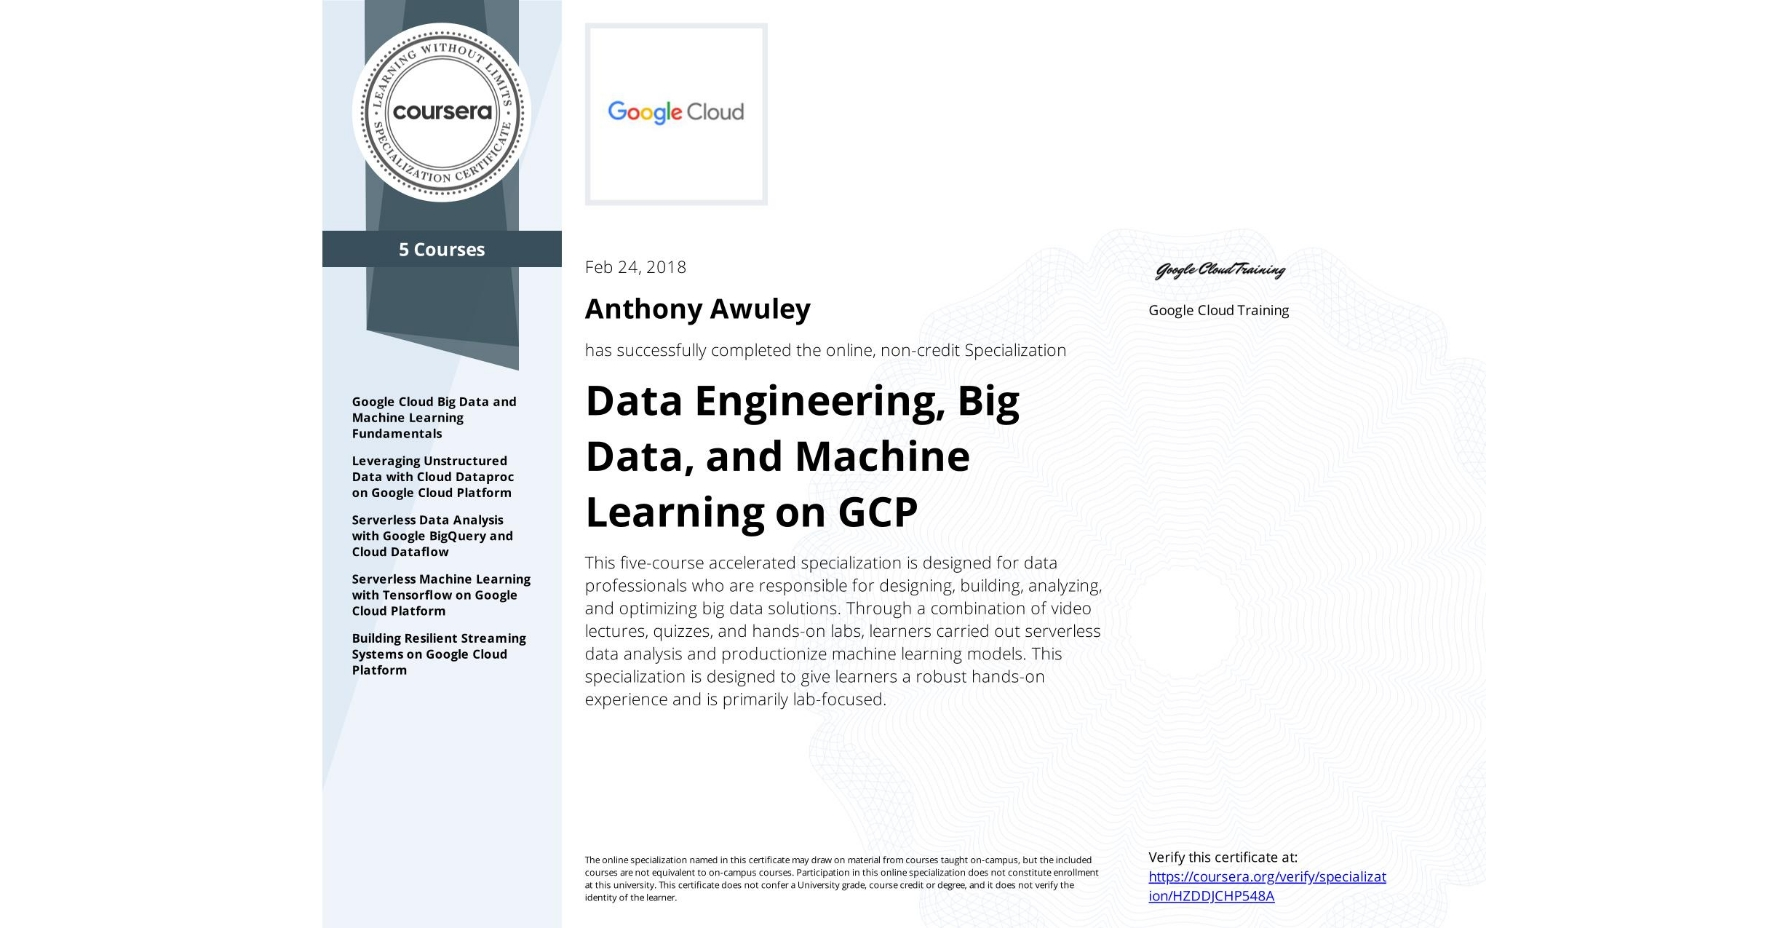 View certificate for Anthony Awuley, Data Engineering, Big Data, and Machine Learning on GCP, offered through Coursera. This five-course accelerated specialization is designed for data professionals who are responsible for designing, building, analyzing, and optimizing big data solutions. Through a combination of video lectures, quizzes, and hands-on labs, learners carried out serverless data analysis and productionize machine learning models. This specialization is designed to give learners a robust hands-on experience and is primarily lab-focused.